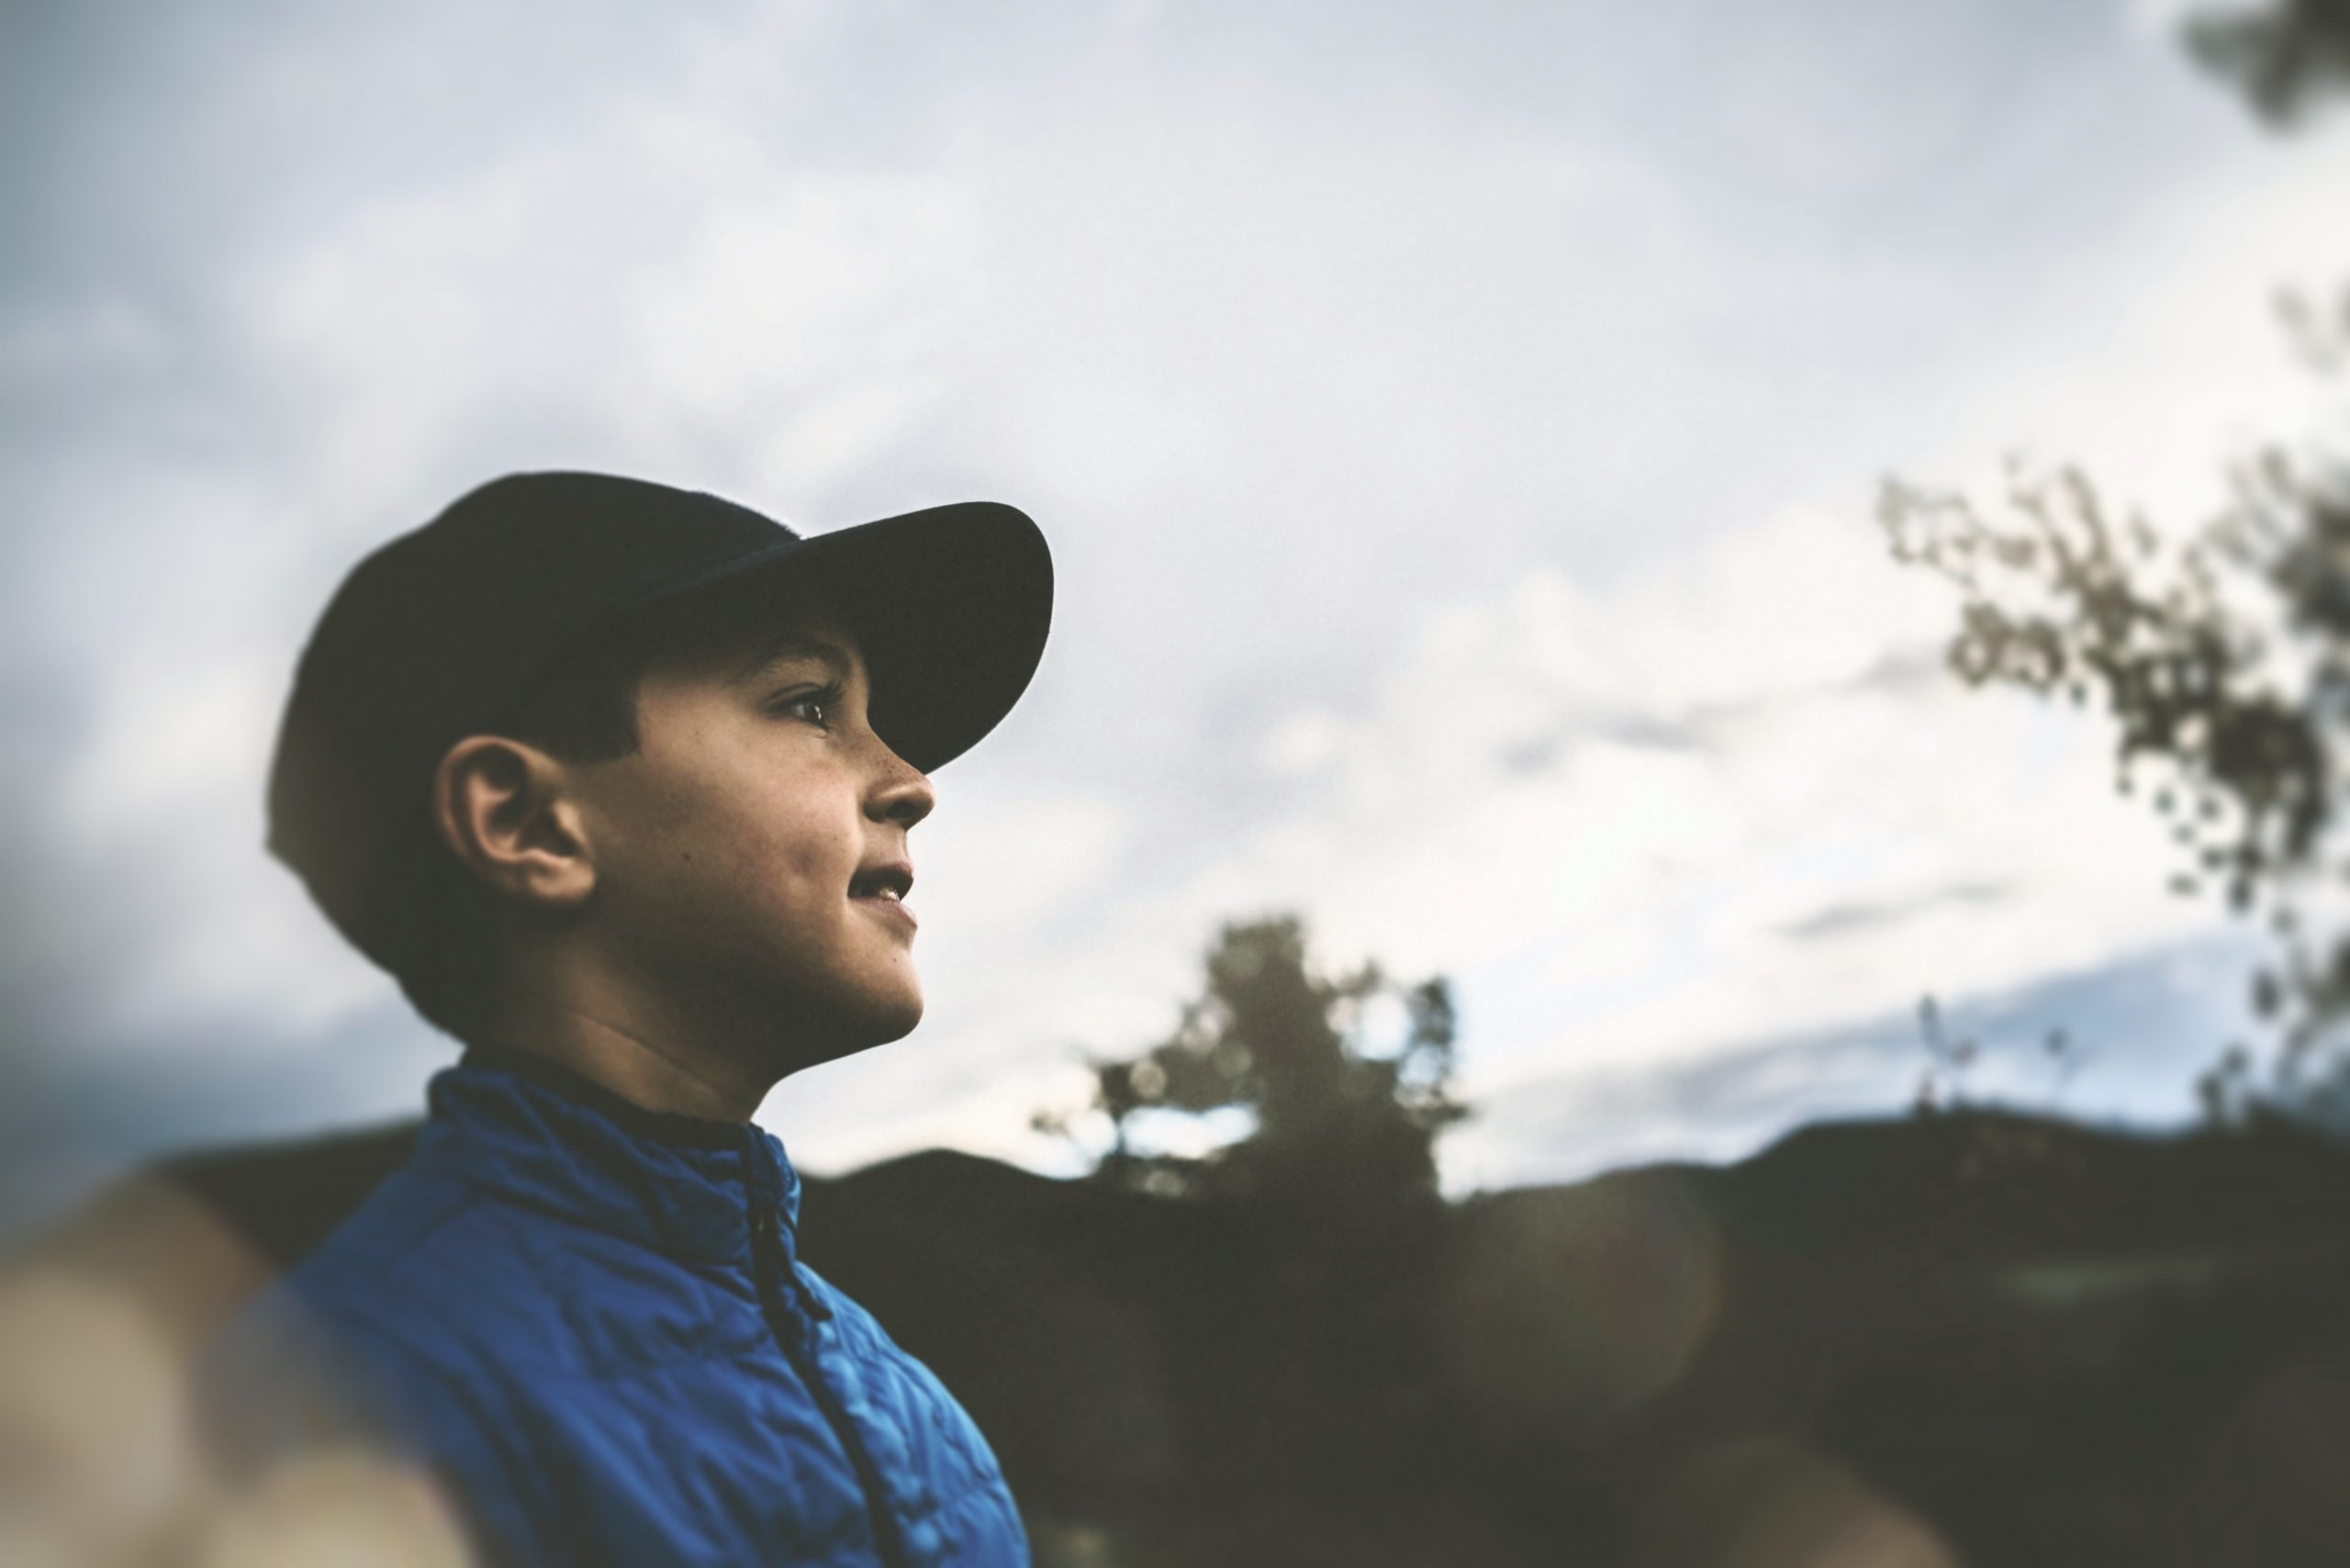 A young pre-teen who is male presenting wears a black baseball cap and a blue down jacket is at the left of the frame, lookin across to the right of the frame. He has dimples. The background is an outdoor scene of hills and two oak trees out of focus.